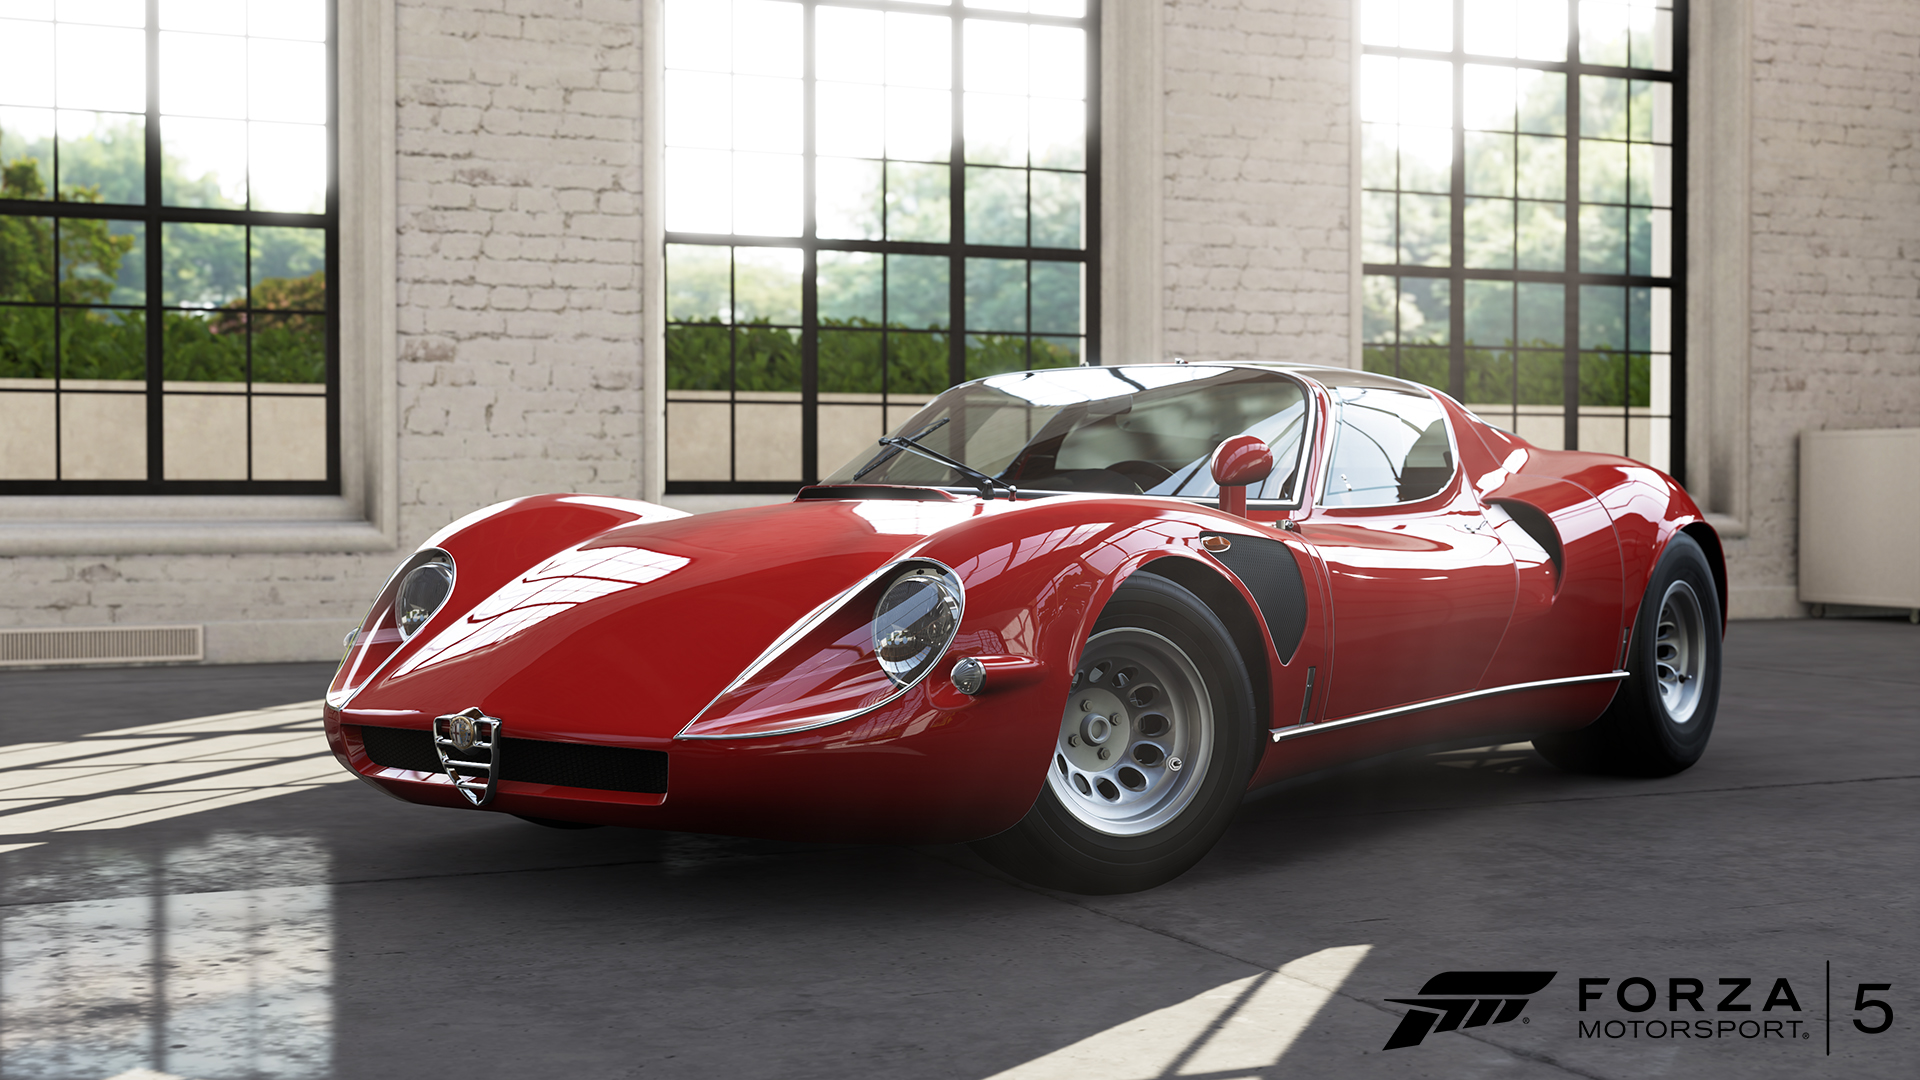 AlfaRomeo33_02_WM_Forza5_TheSmokingTireCarPack